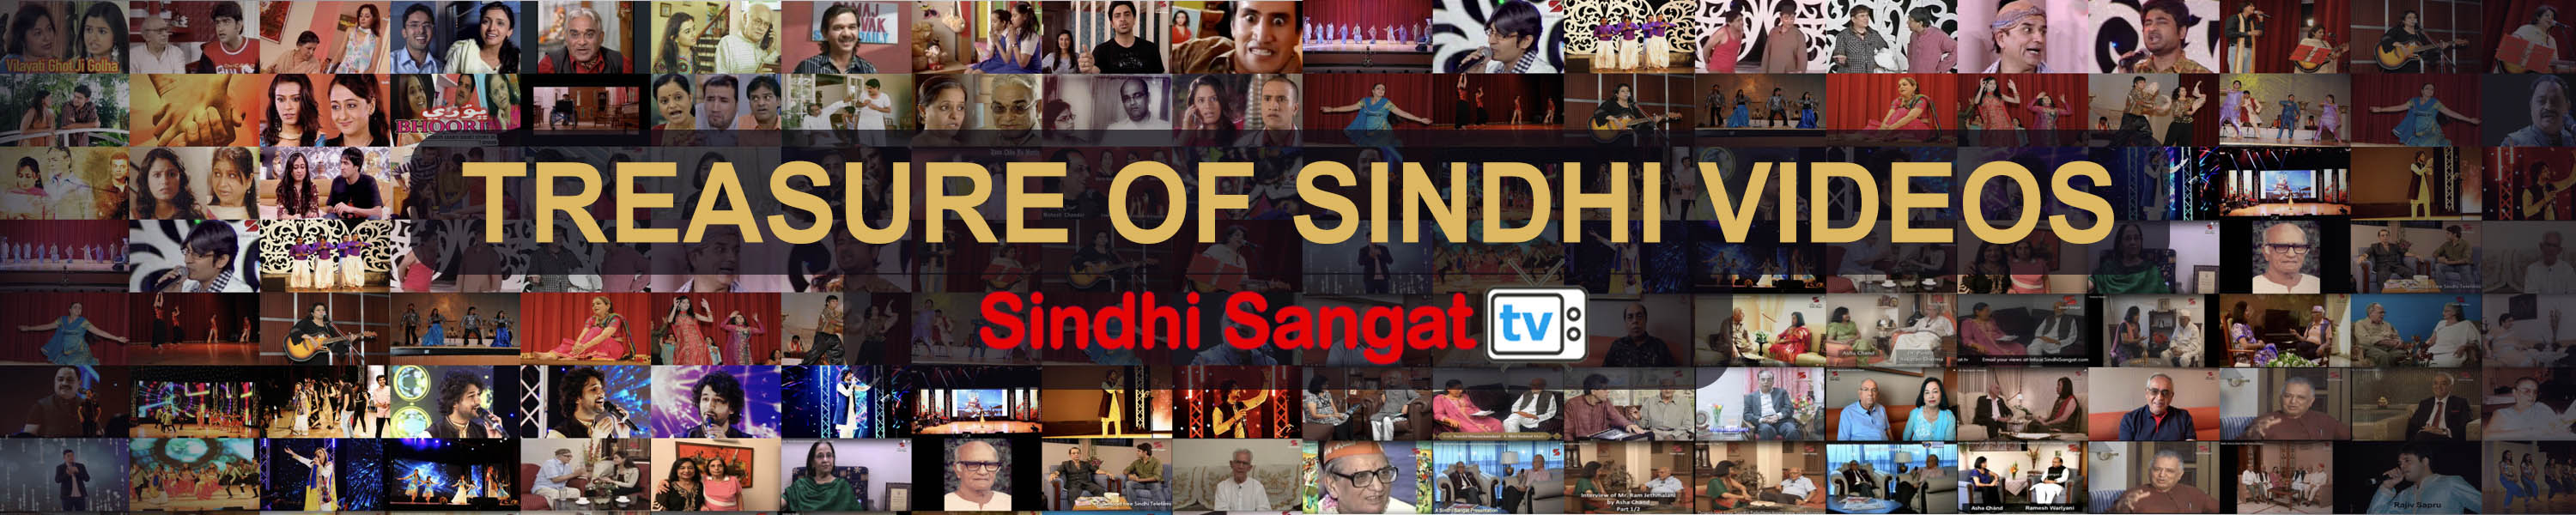 Treasure of Sindhi Videos